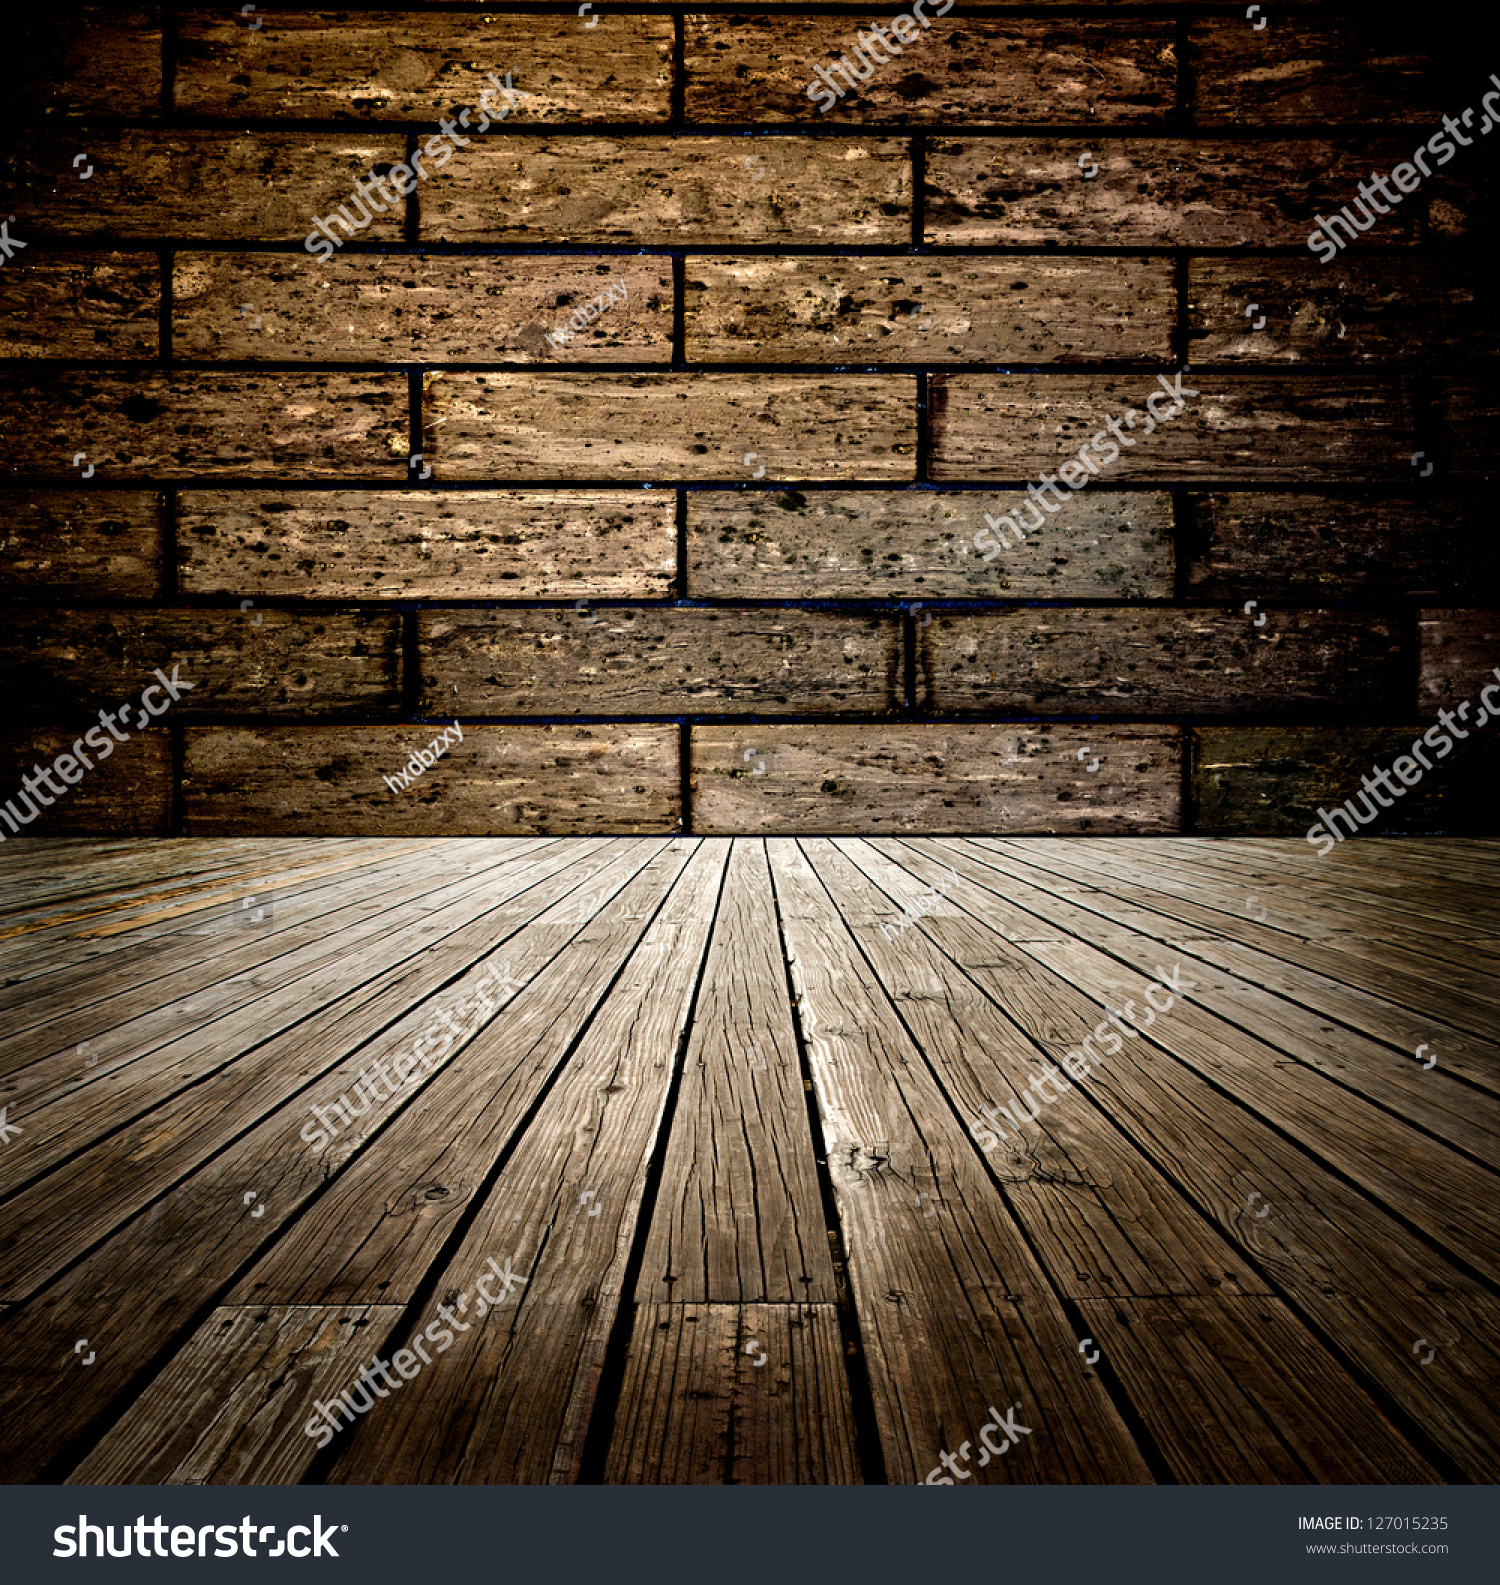 Abstract the old wood floor and brick wall for background